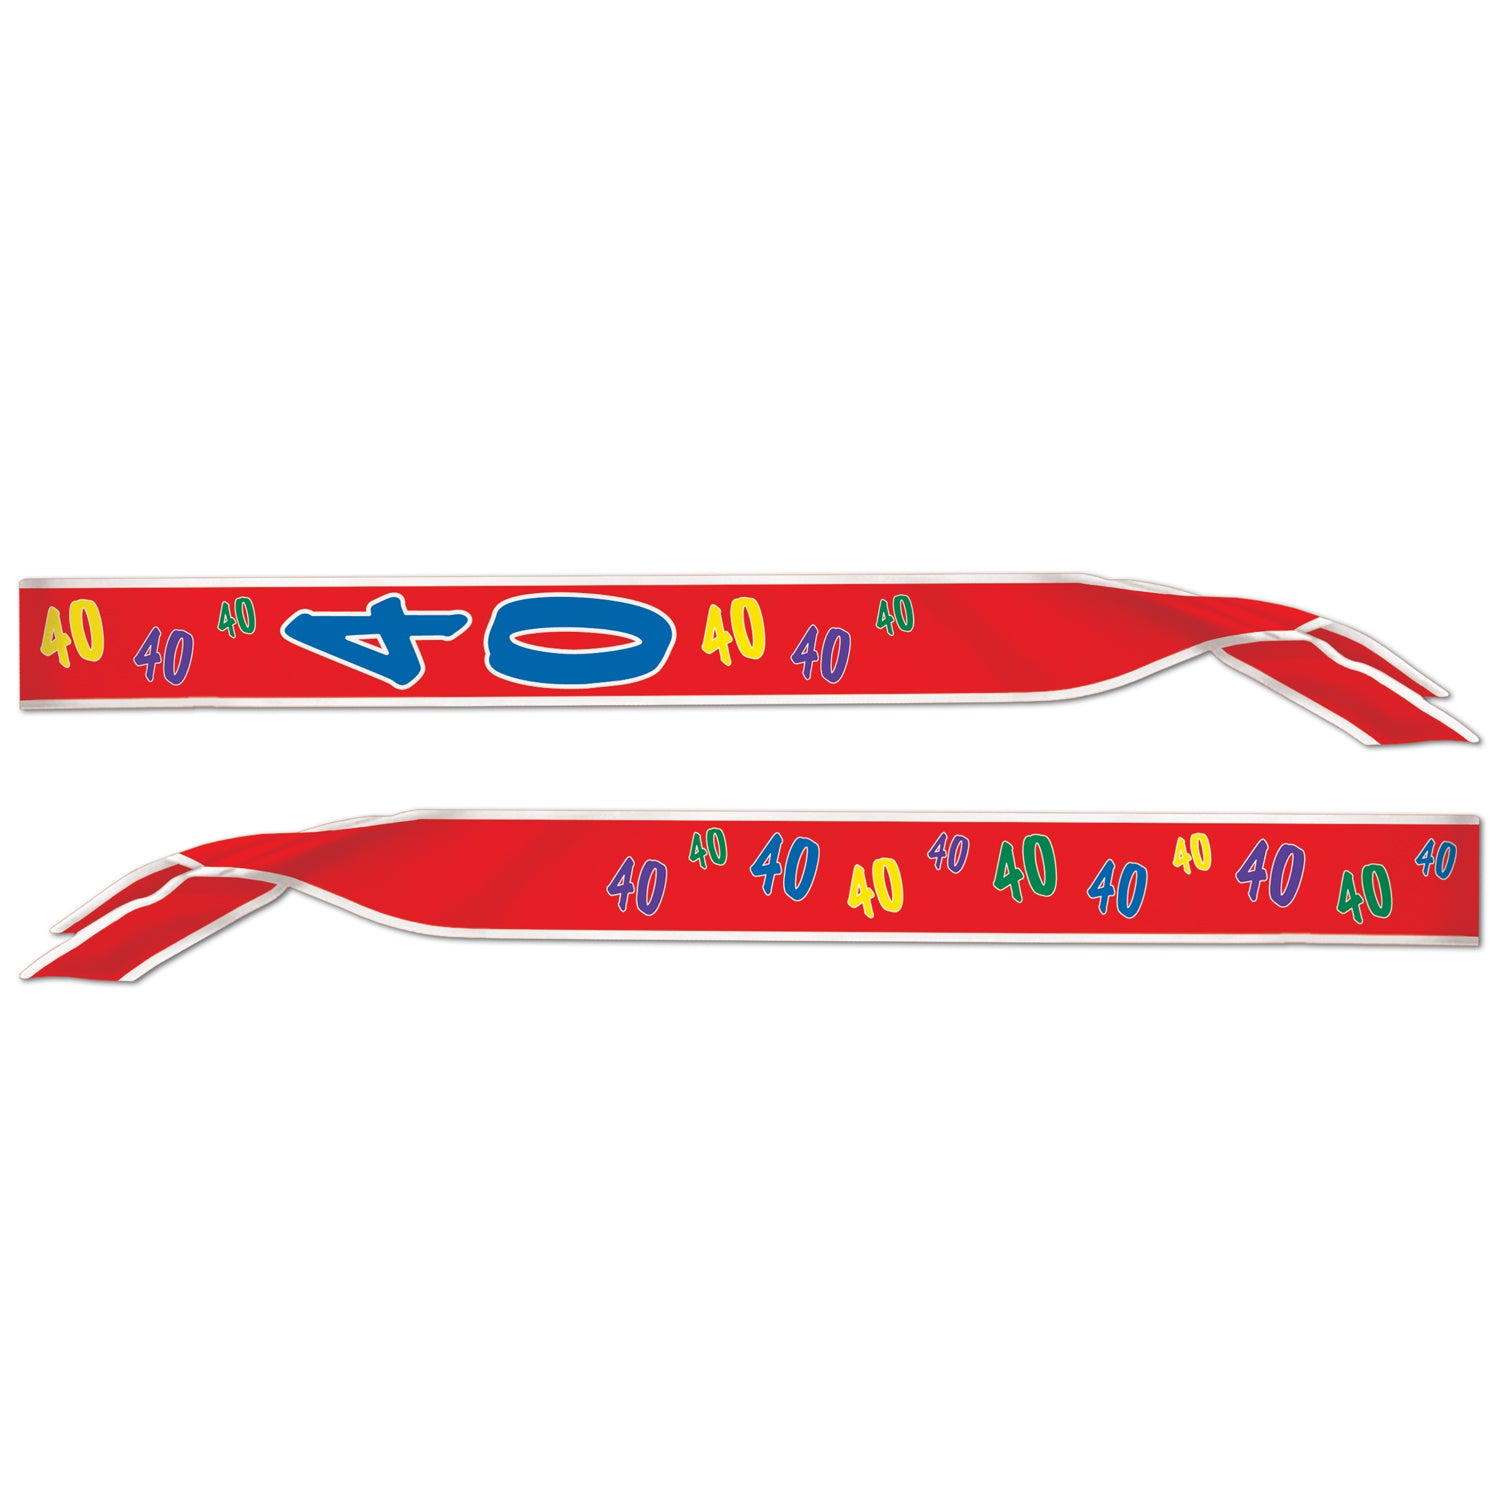 40 Satin Sash by Beistle - 40th Birthday Party Decorations